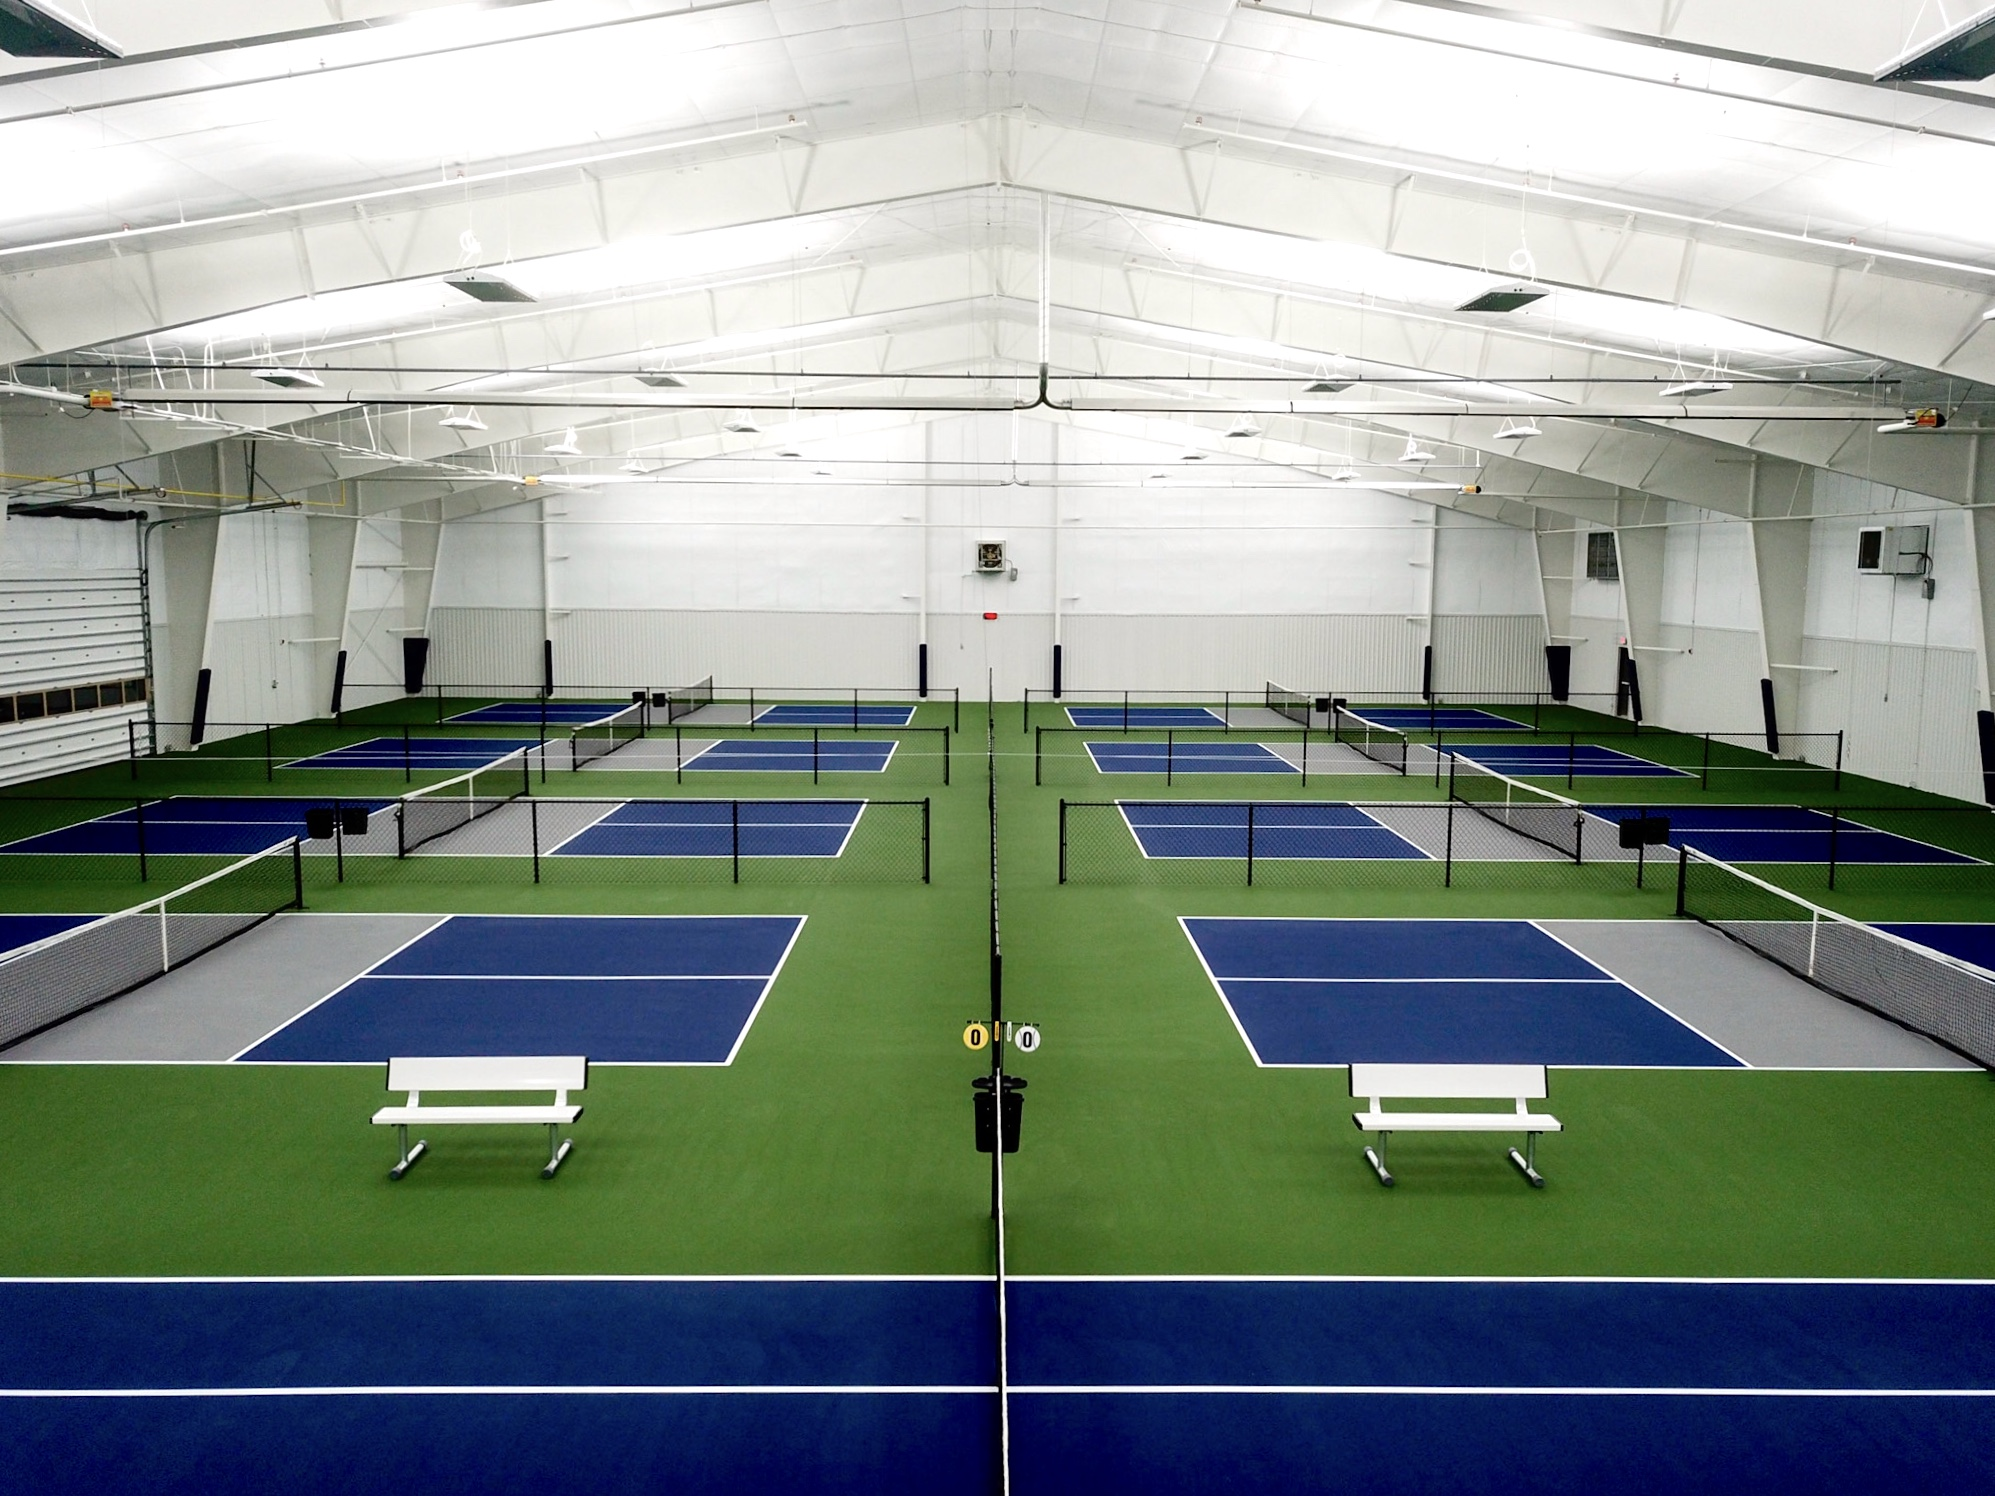 New pickleball facility